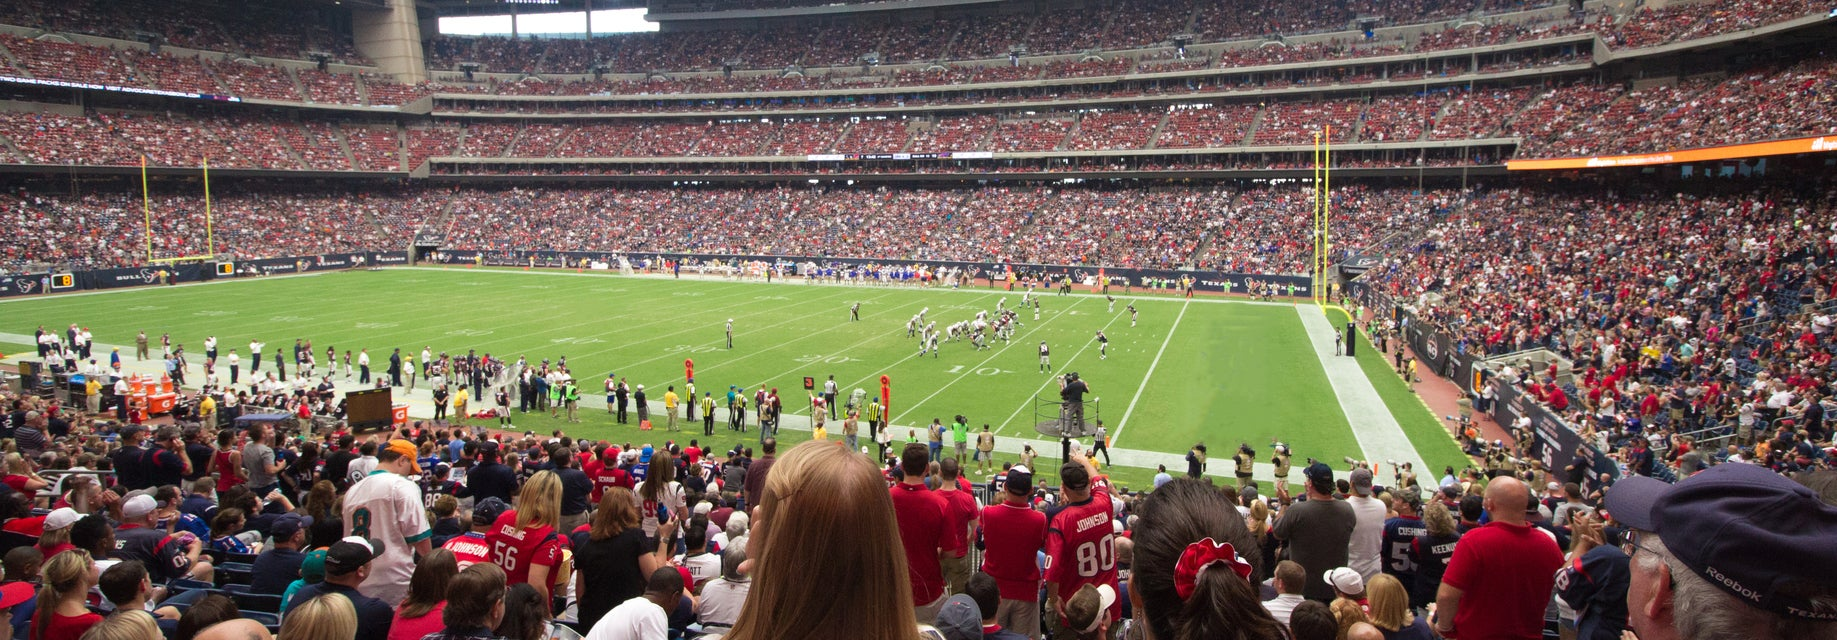 Washington State vs Houston Football Tickets